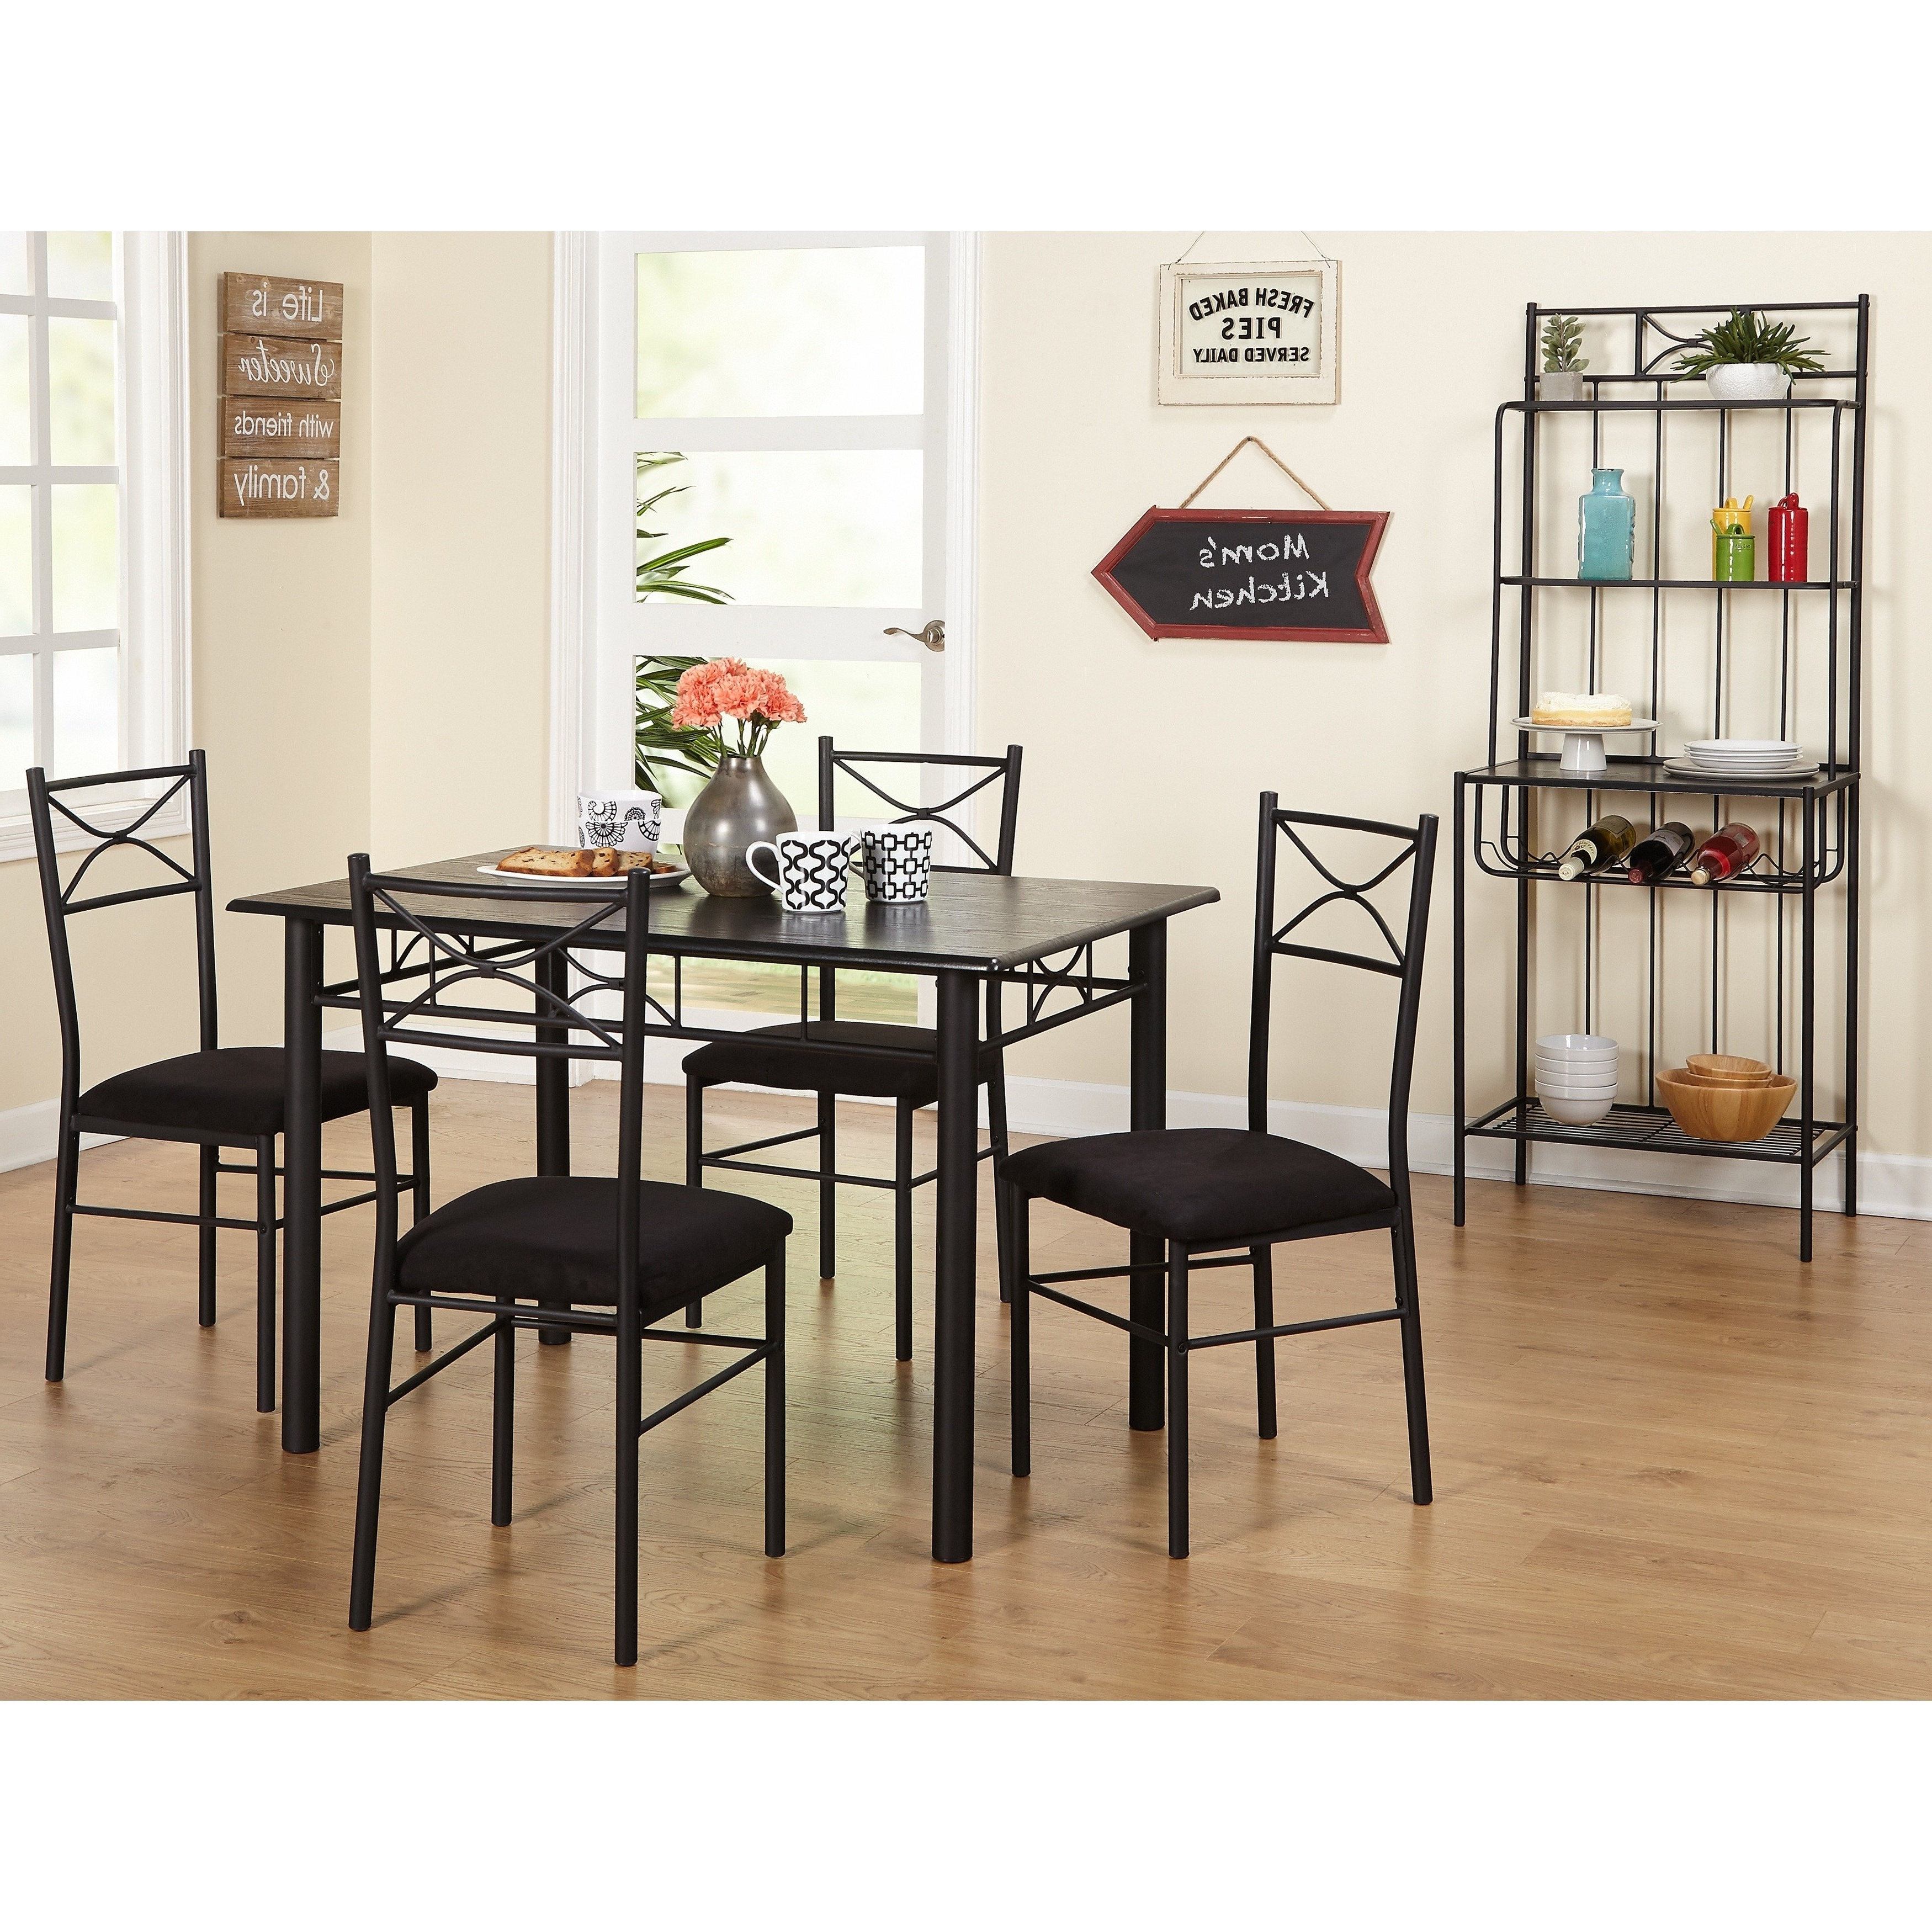 Fashionable Shop Simple Living Valencia 6 Piece Metal Dining Set With Baker's In Valencia 5 Piece 60 Inch Round Dining Sets (View 7 of 25)